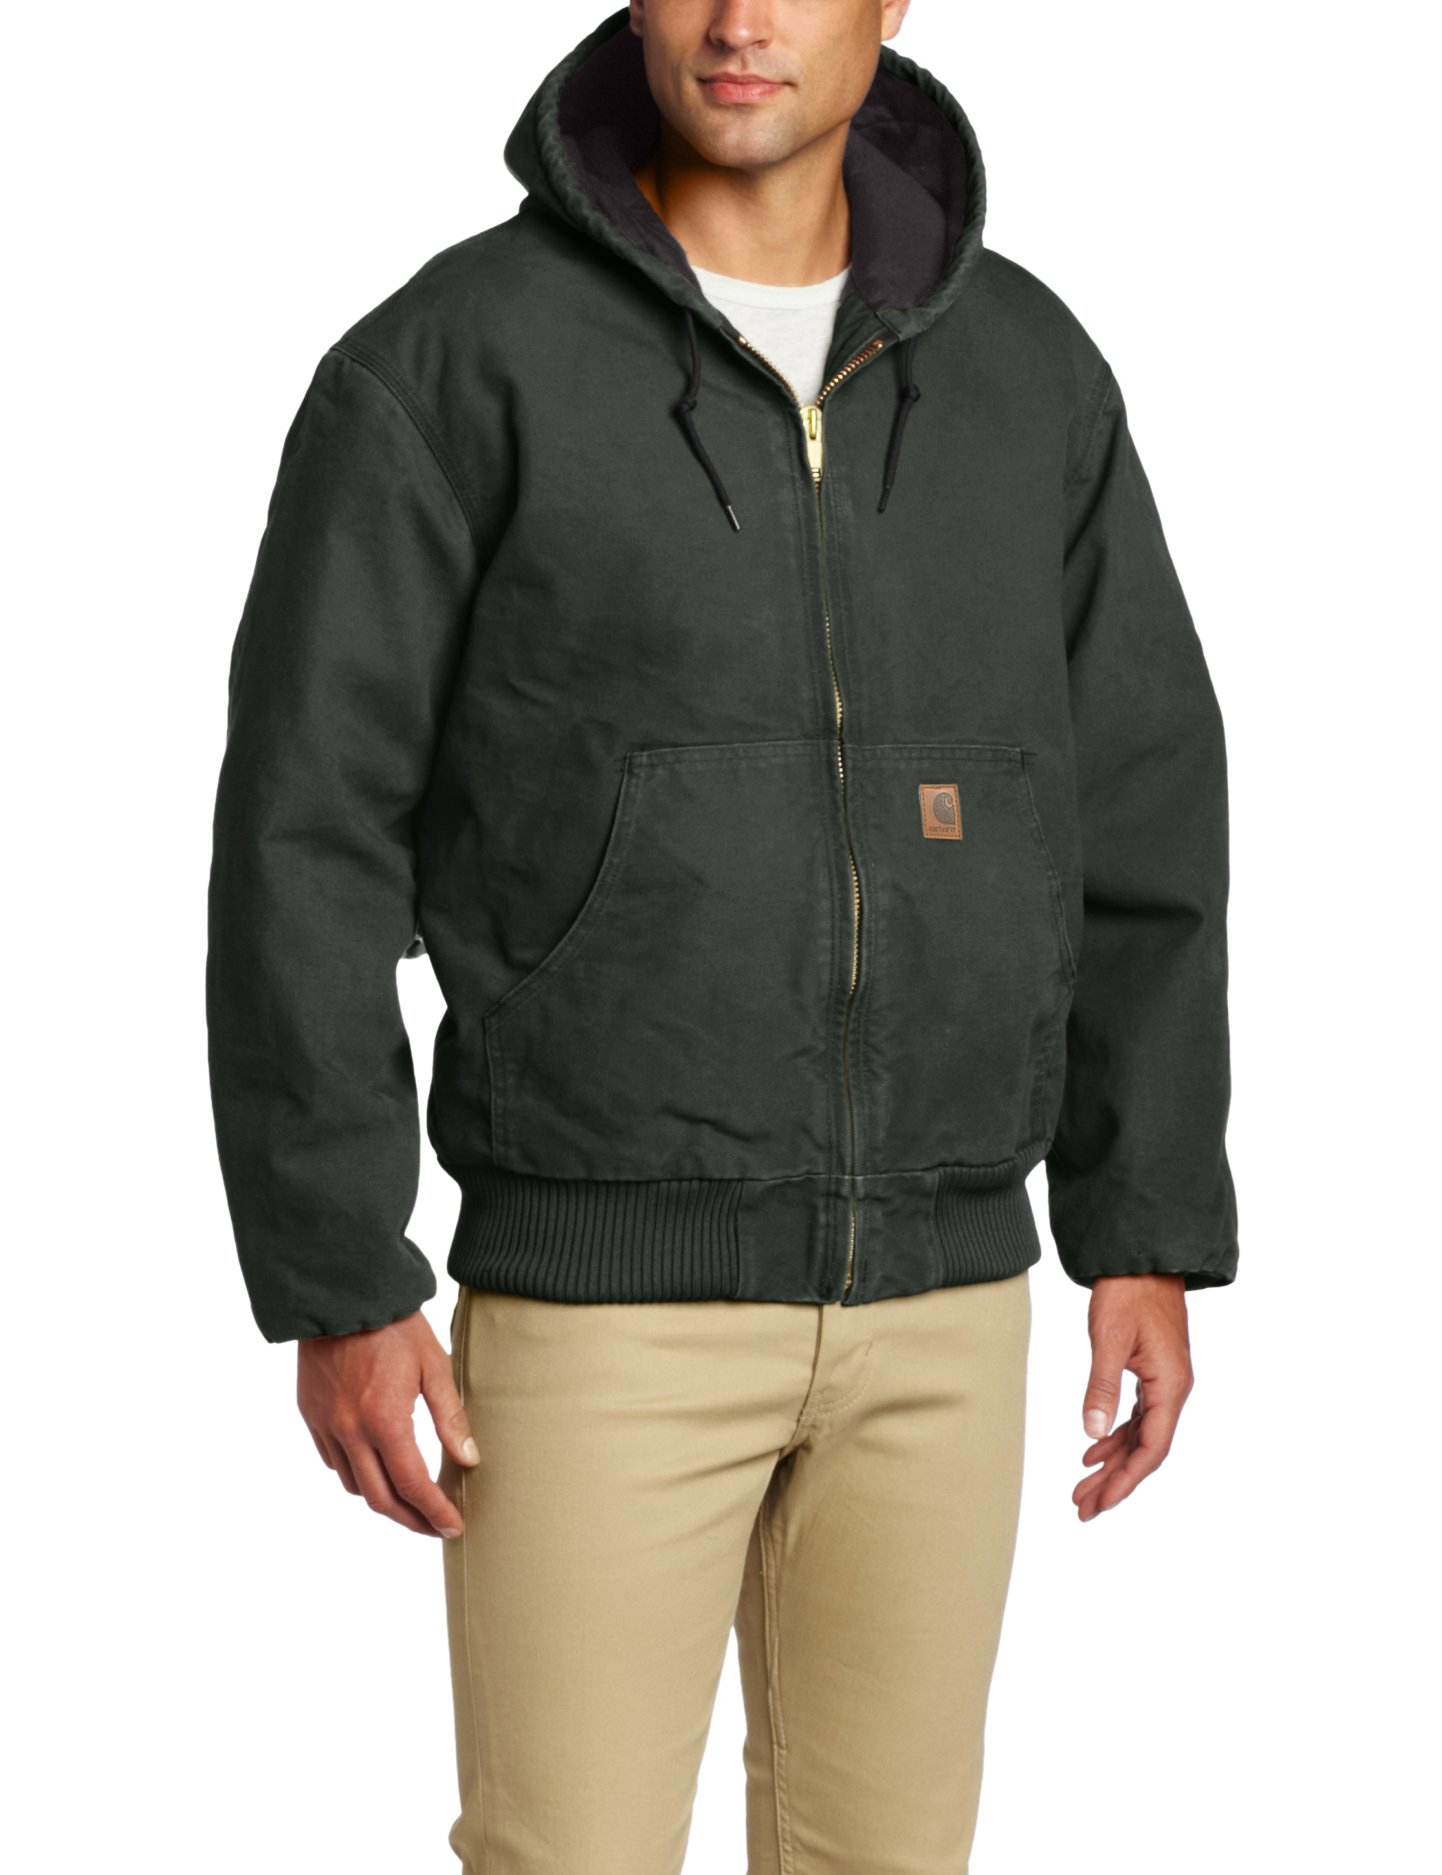 Carhartt Men's Quilted Flannel Lined Sandstone Active Jacket J130,Moss,Large